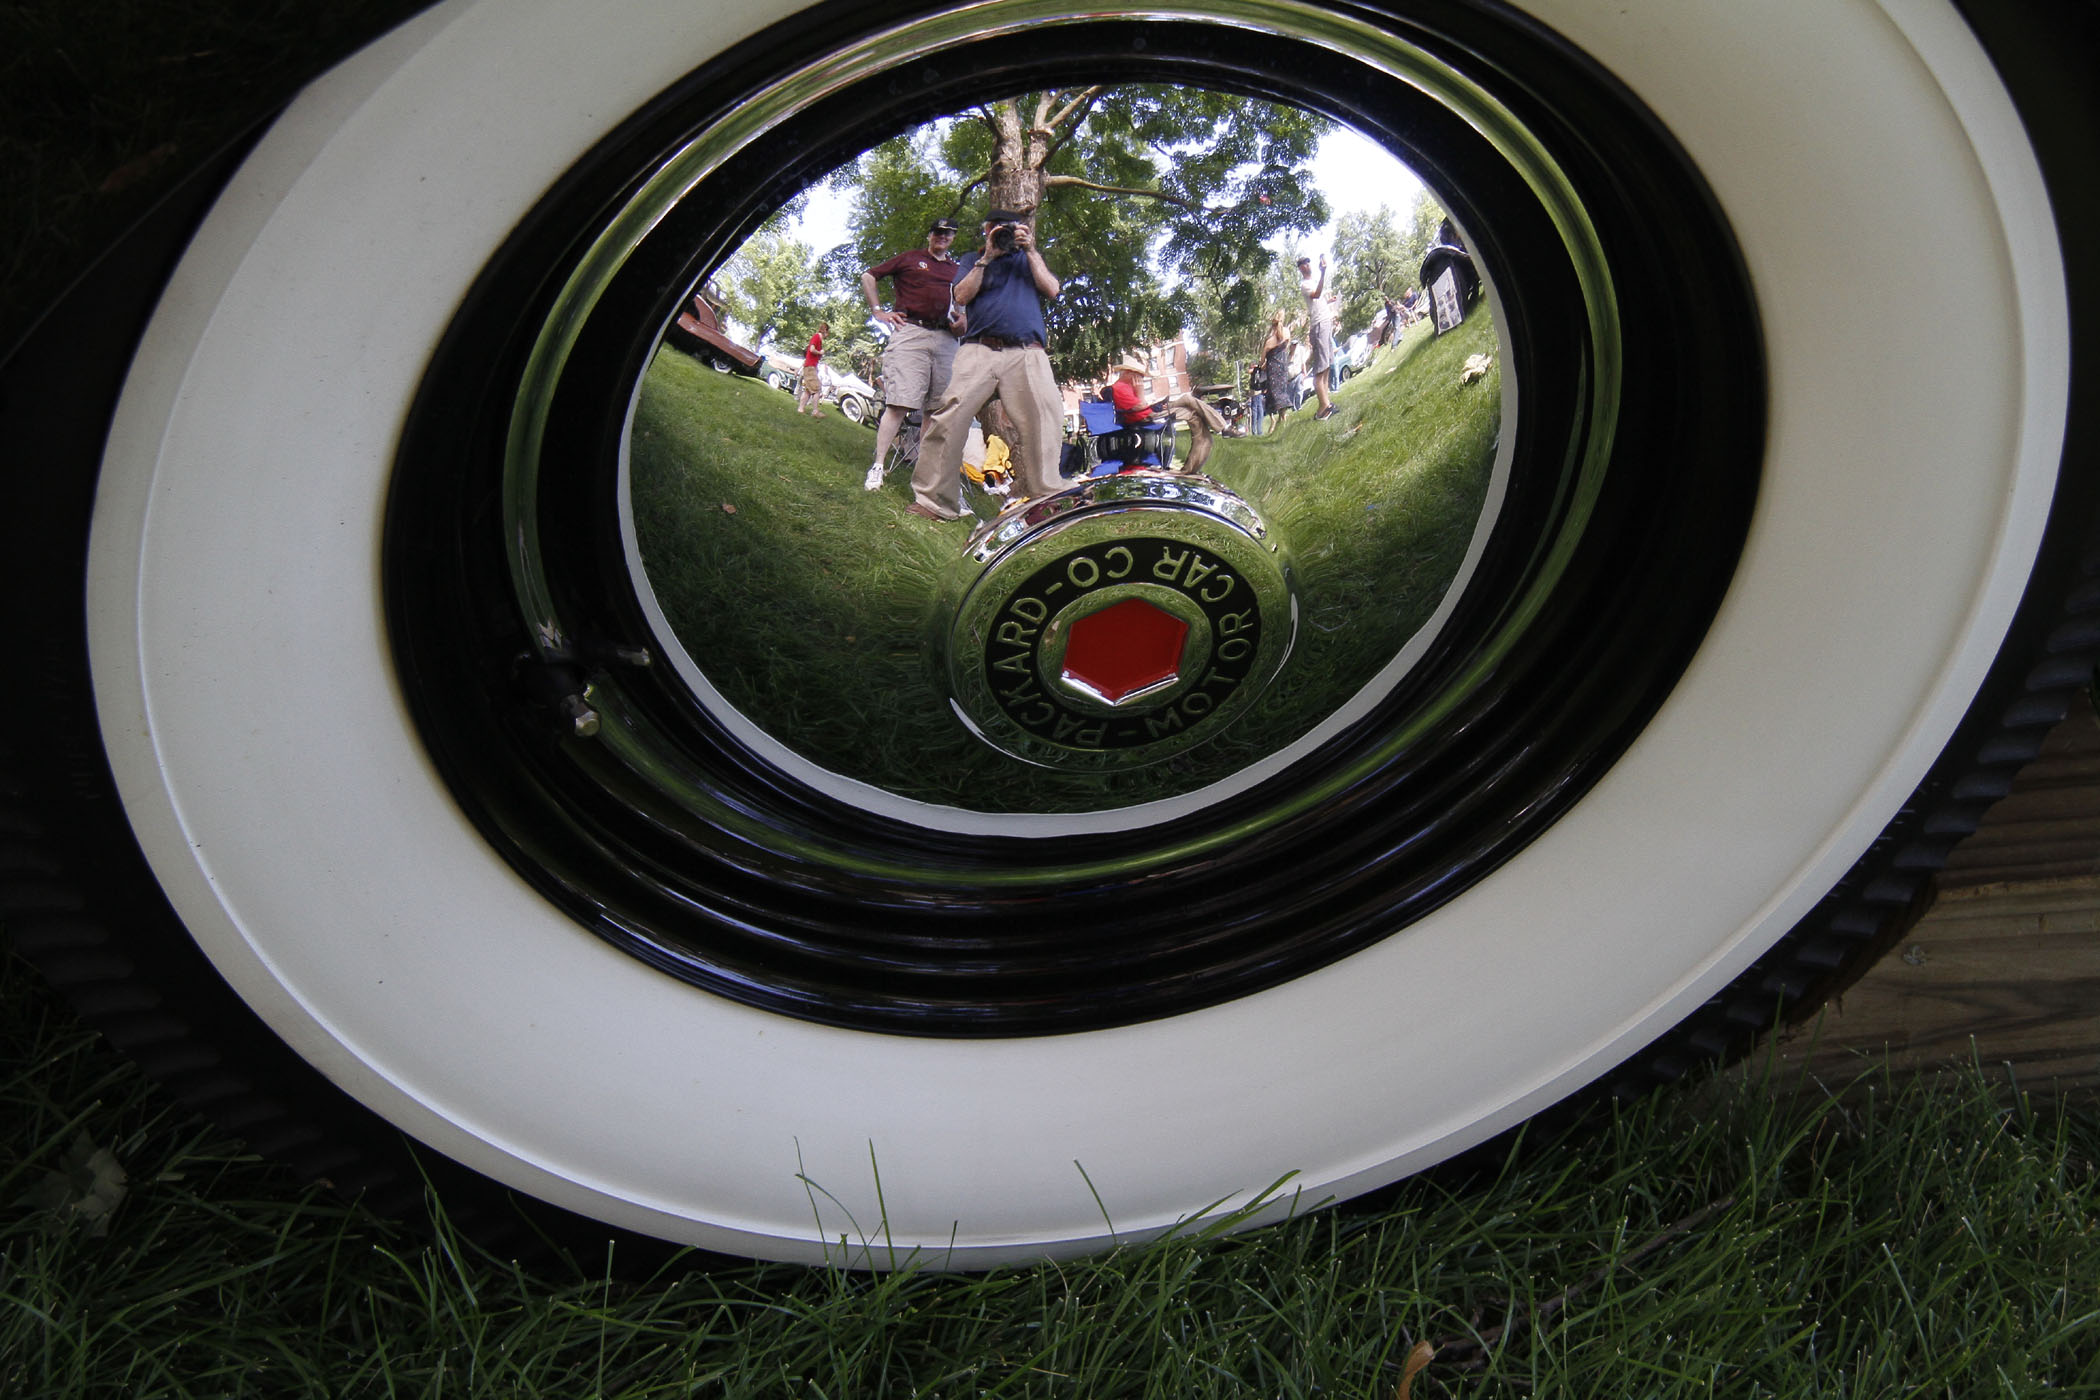 ALBERT_AND_DALE_REFLECTION_ON_PACKARD_HUB_CAP